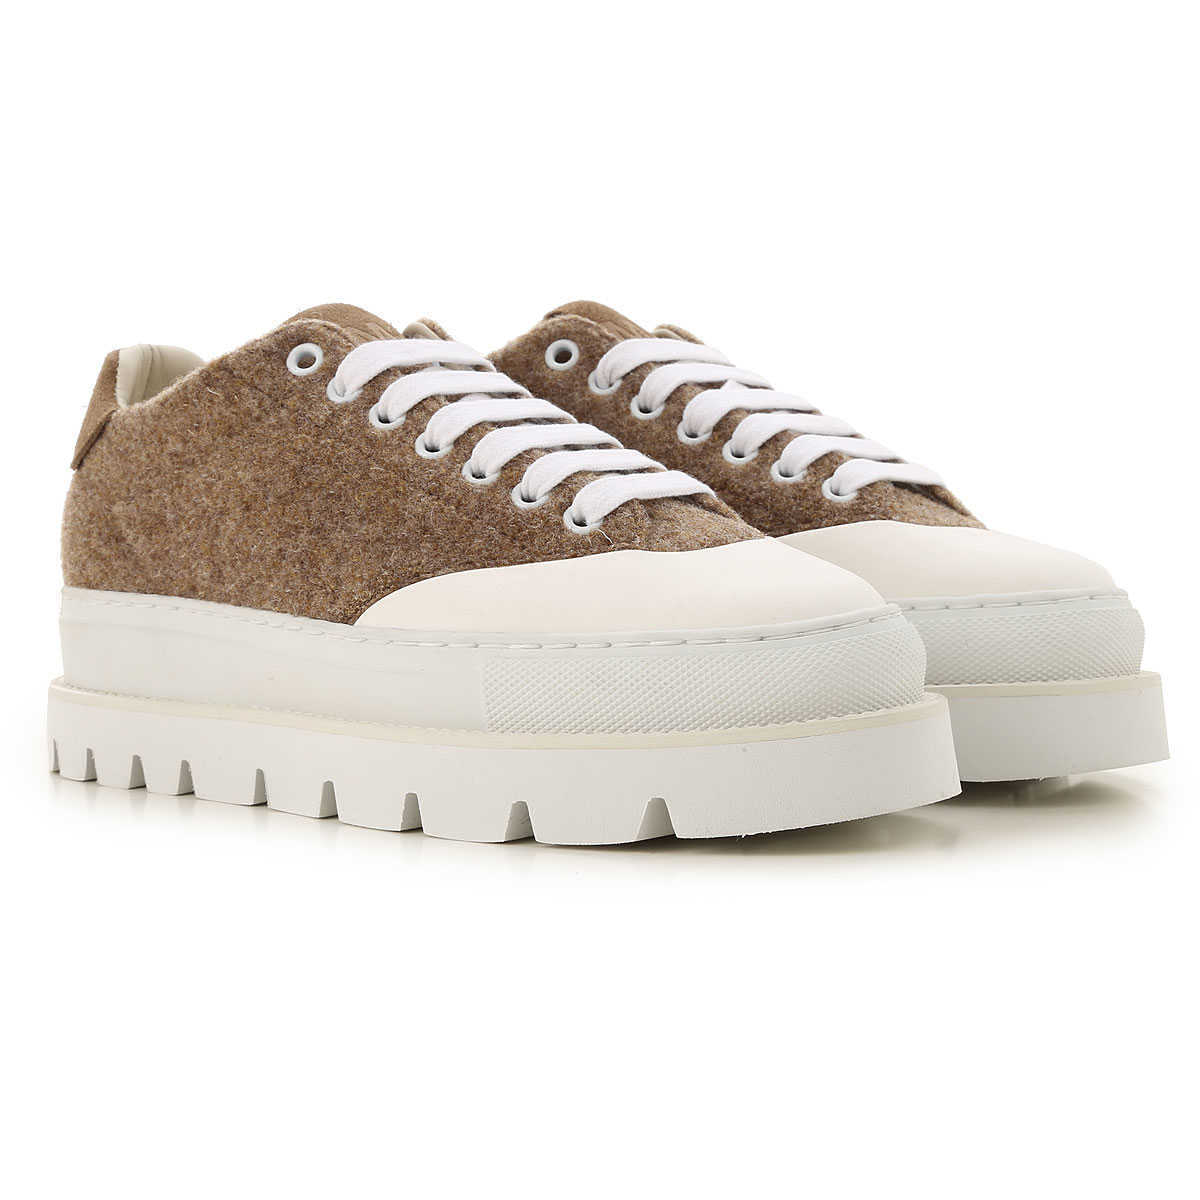 Maison Martin Margiela Sneakers for Women On Sale in Outlet Dark Sand Brown UK - GOOFASH